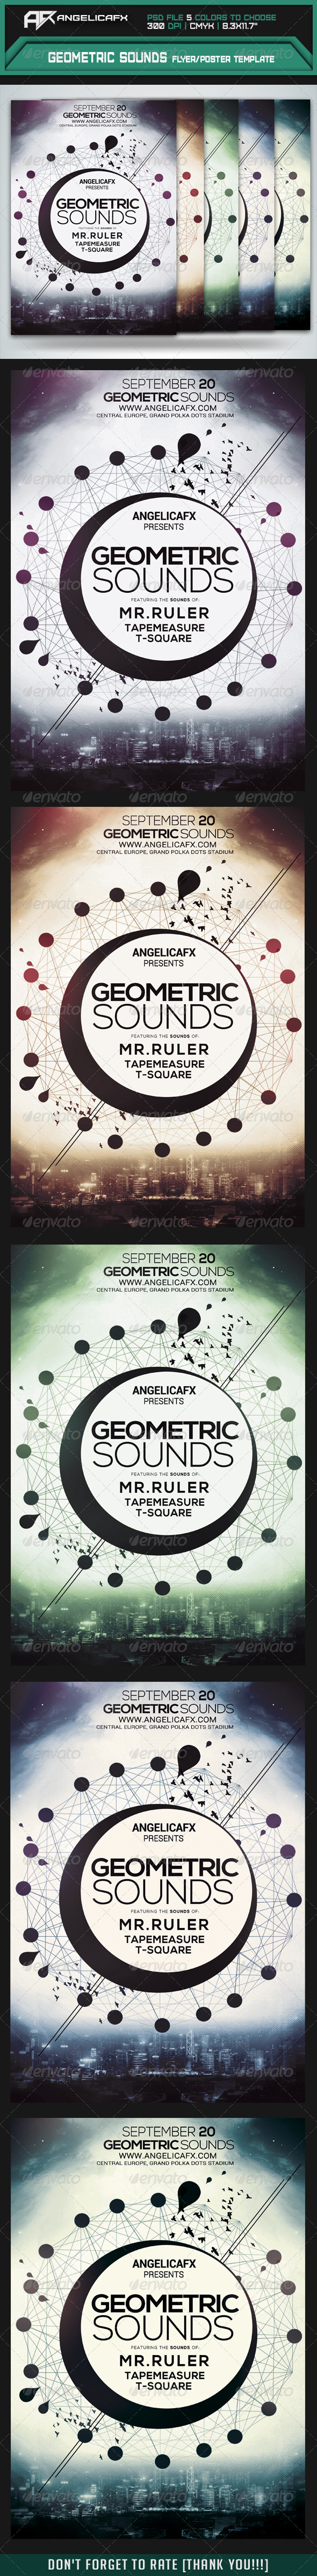 Geometric Sounds Flyer Poster Template